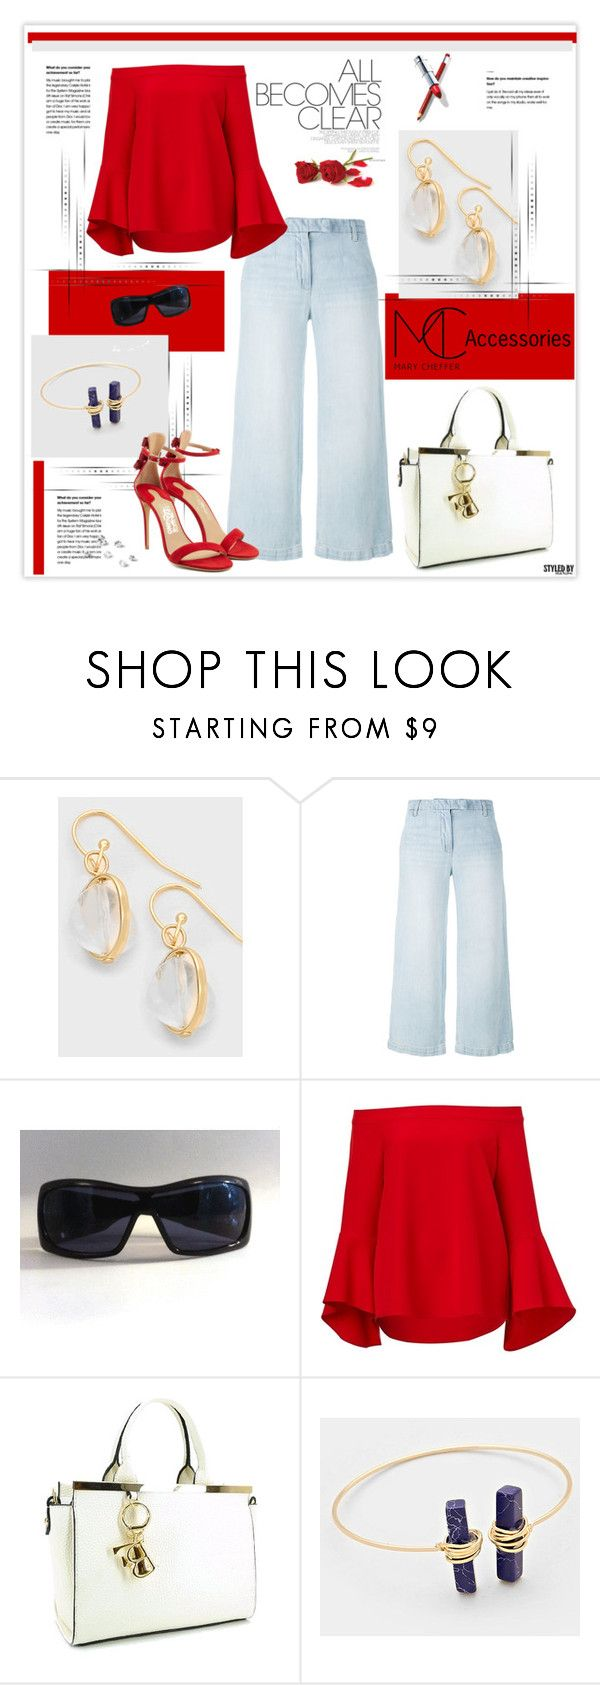 """""""Great Accessories"""" by marion-fashionista-diva-miller ❤ liked on Polyvore featuring Current/Elliott and Salvatore Ferragamo"""